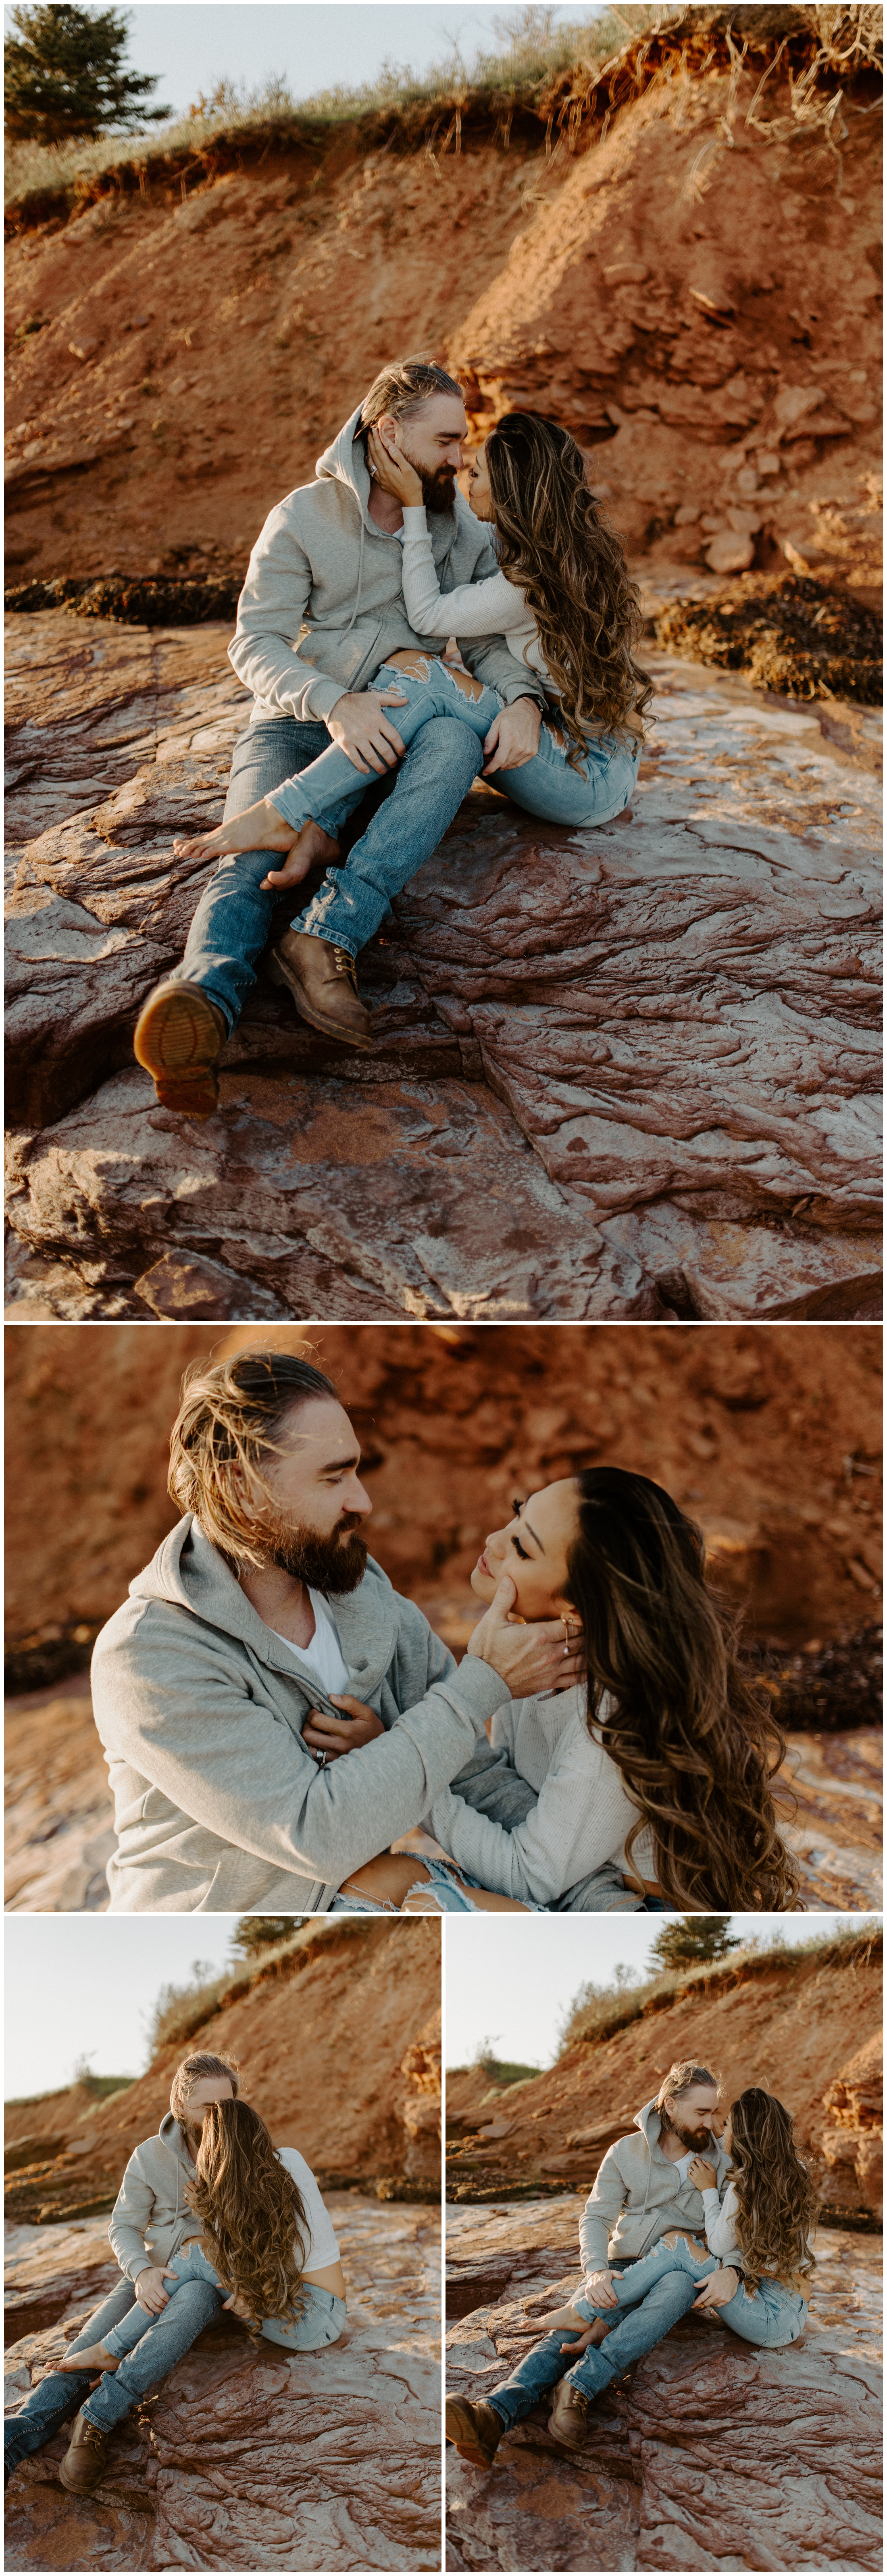 Red Sand Beach Engagements On Prince Edward Island at Sunset | Jessica Heron Images_0009.jpg